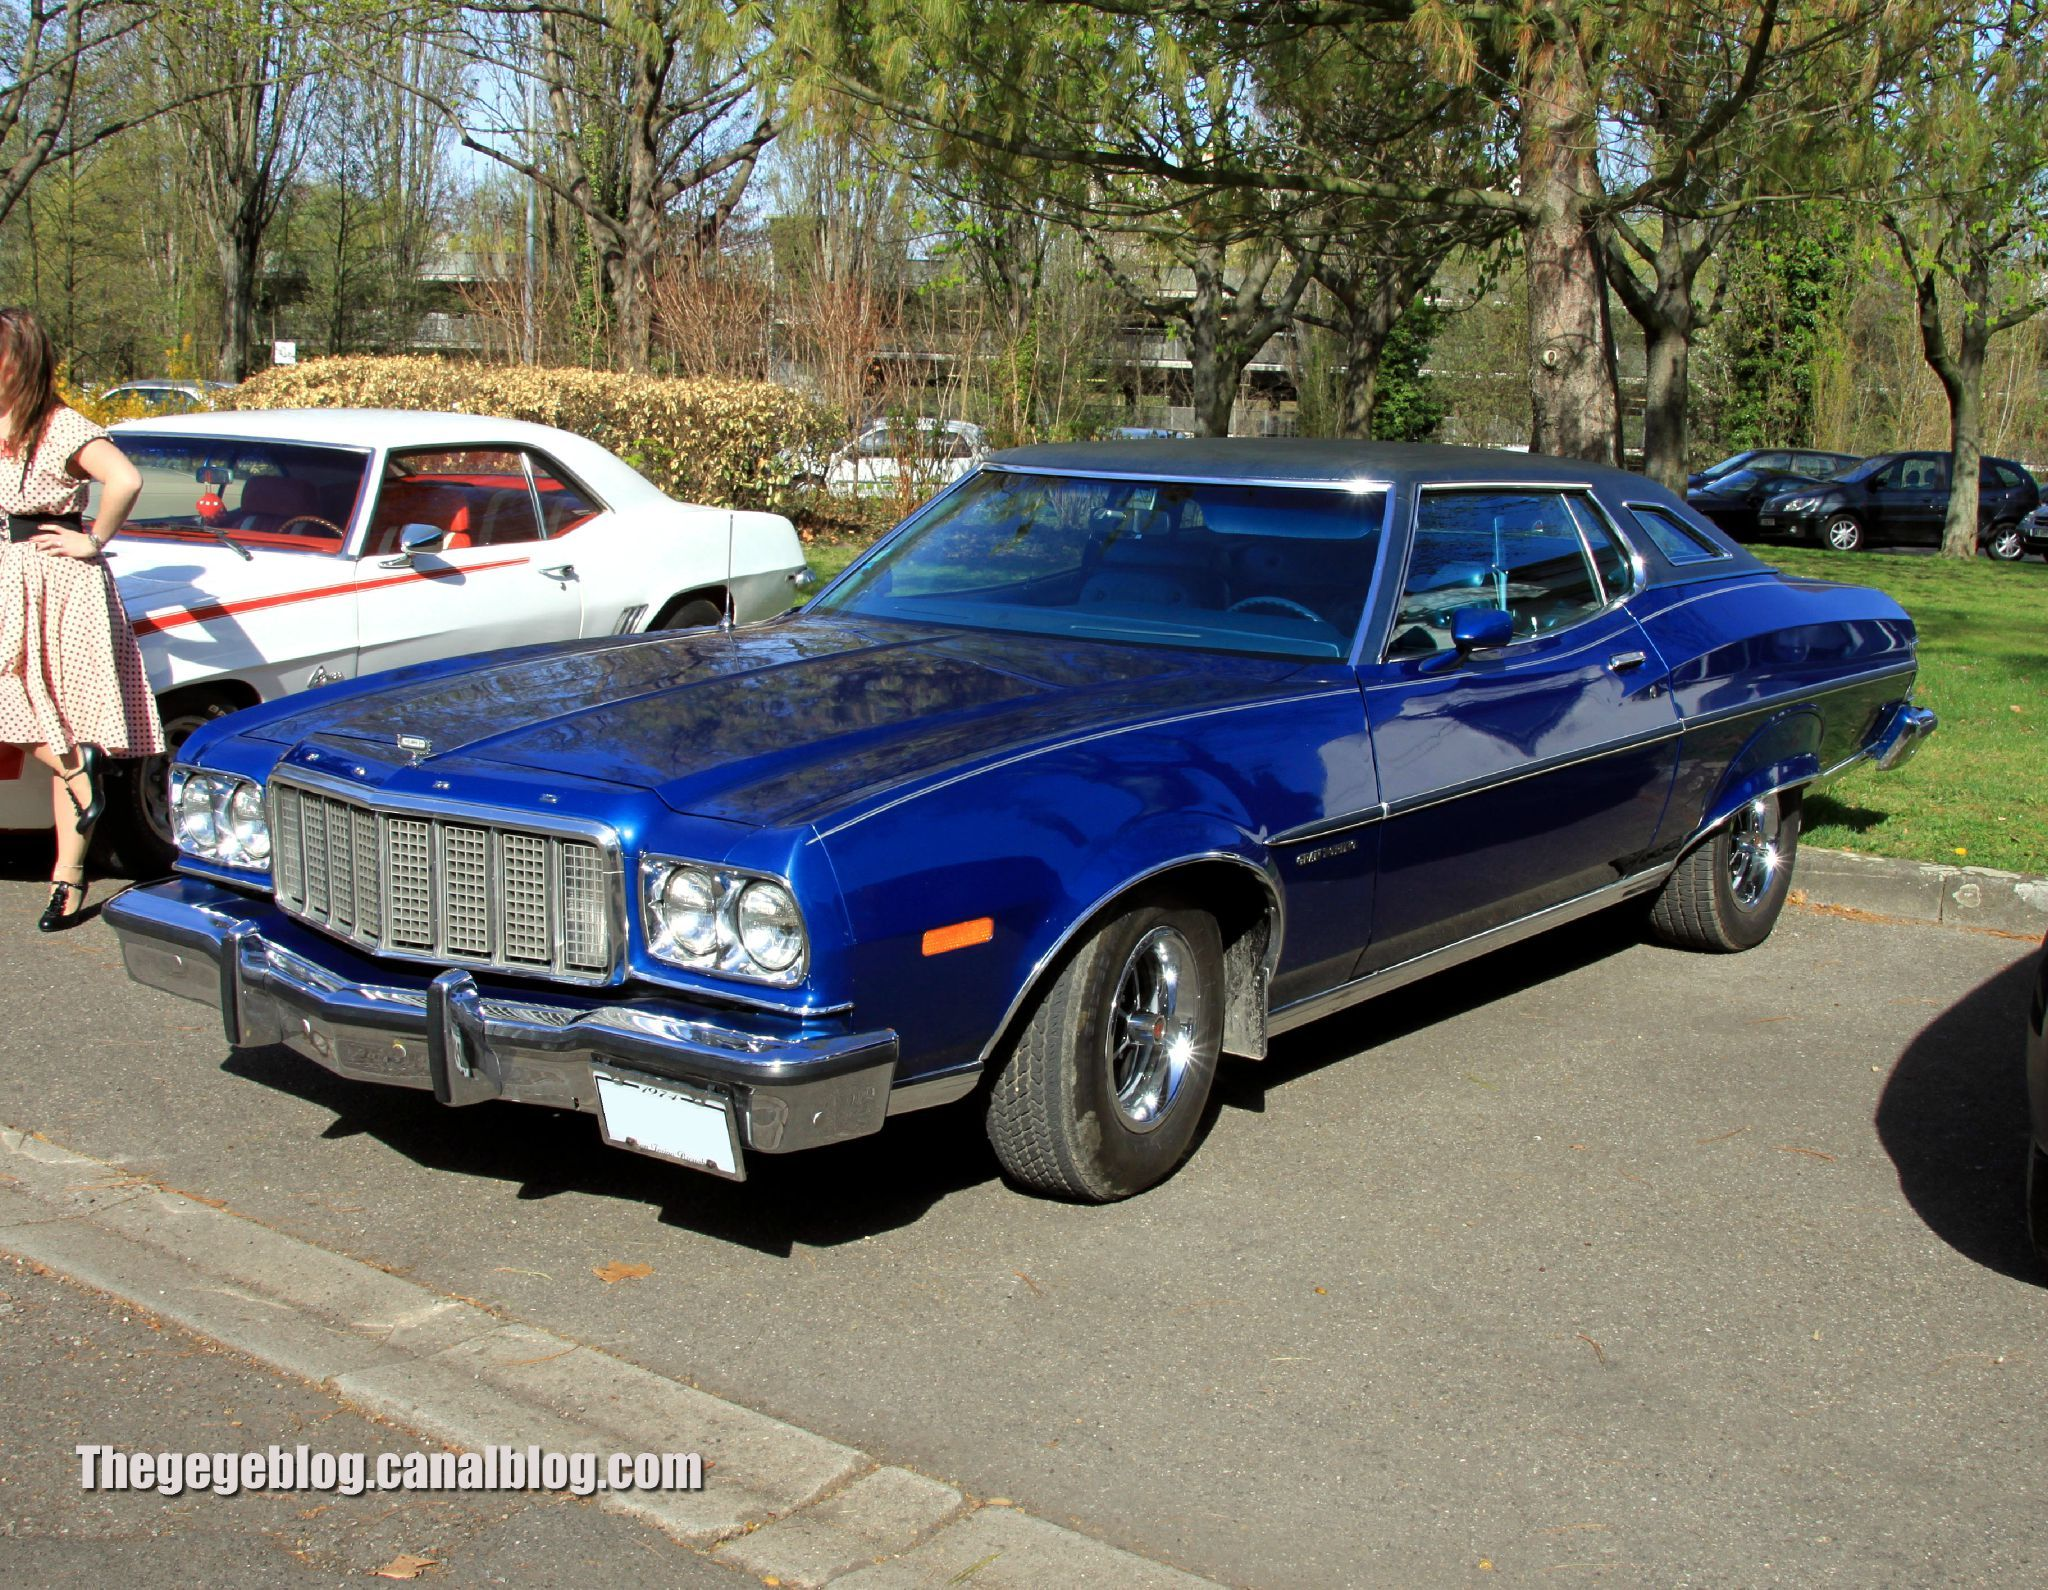 ford torino ford gran torino hardtop coupe de 1974 retrorencard avril 2012 01 fords i like. Black Bedroom Furniture Sets. Home Design Ideas